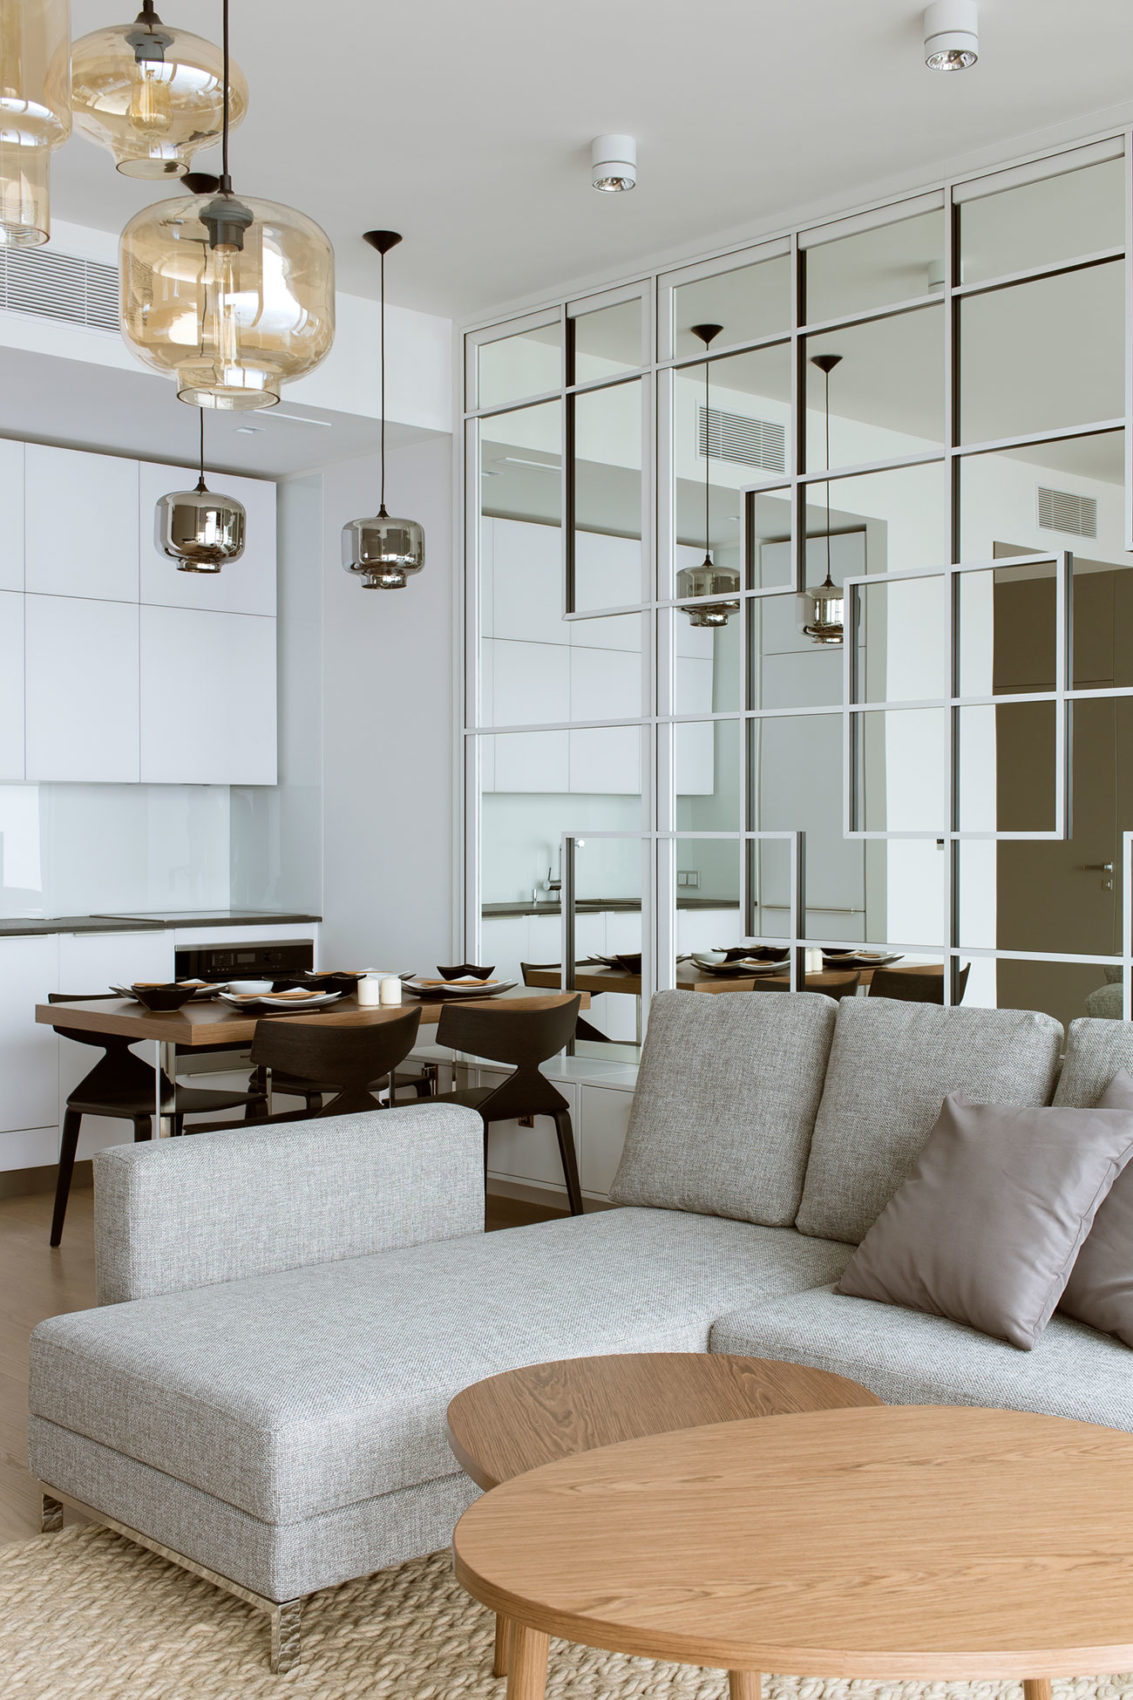 Enclave in the Clouds by HOLA Design (4)